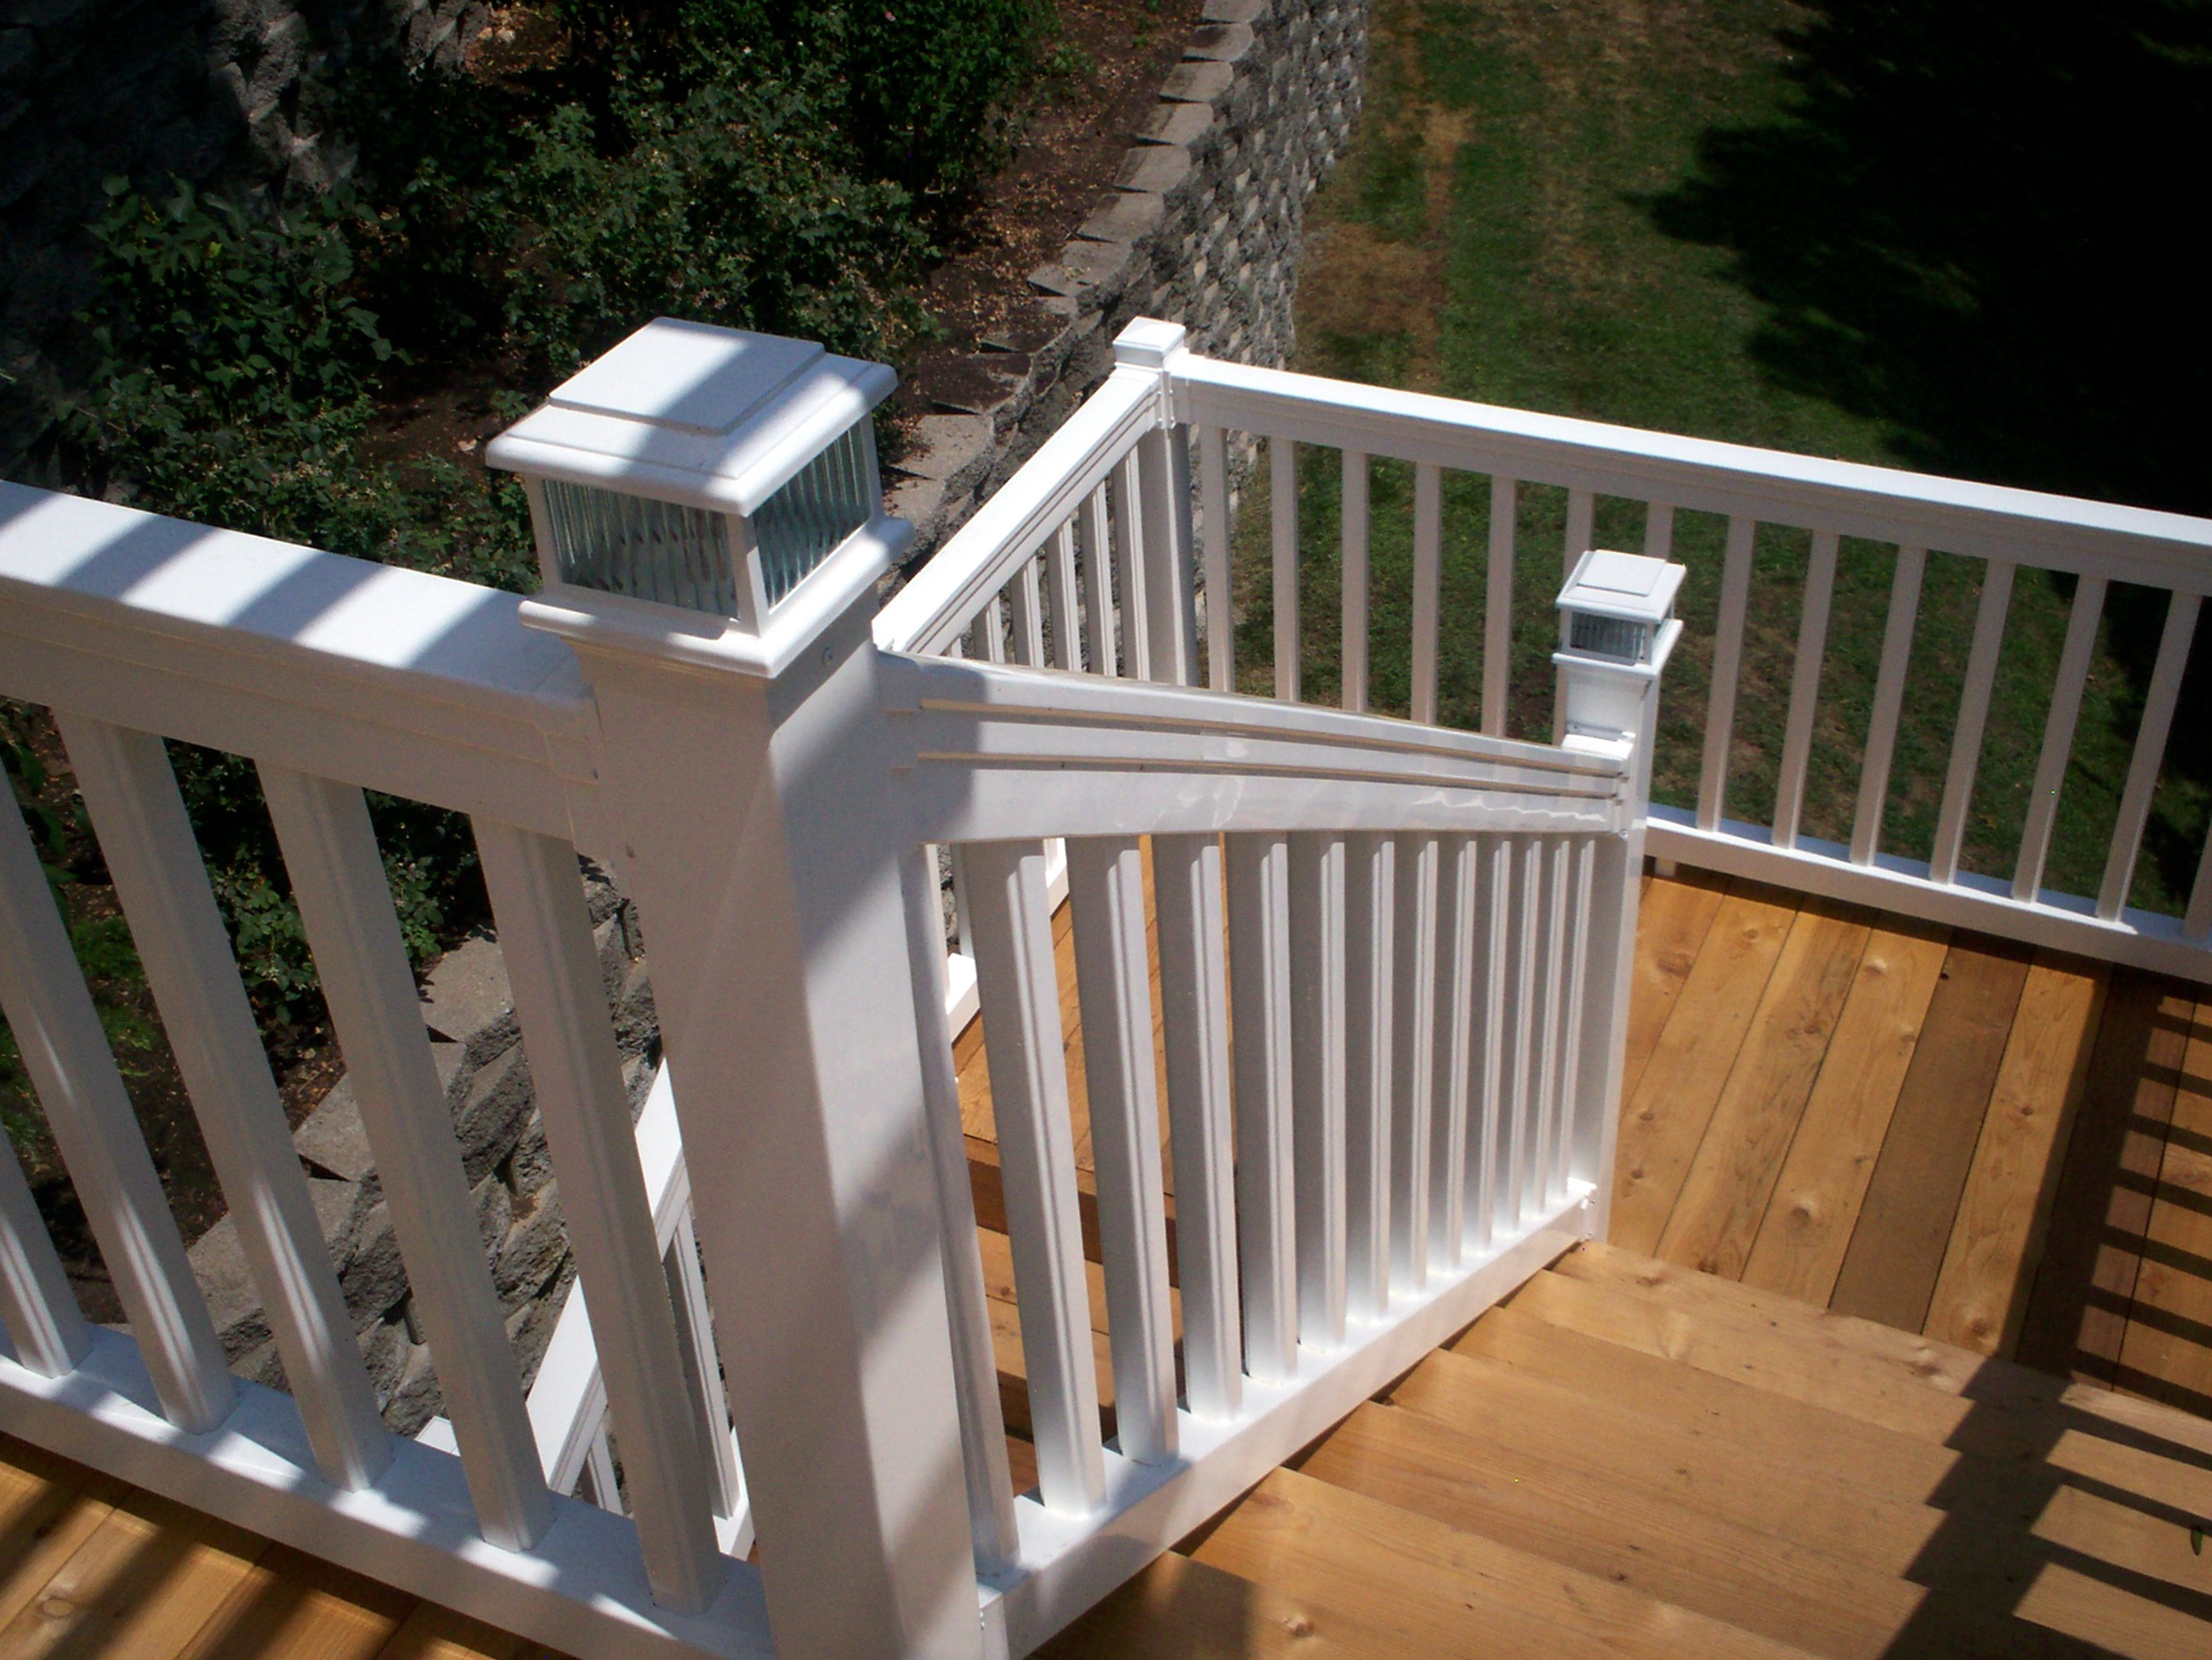 Standard Railing Height Deck Stairs Home Design Ideas